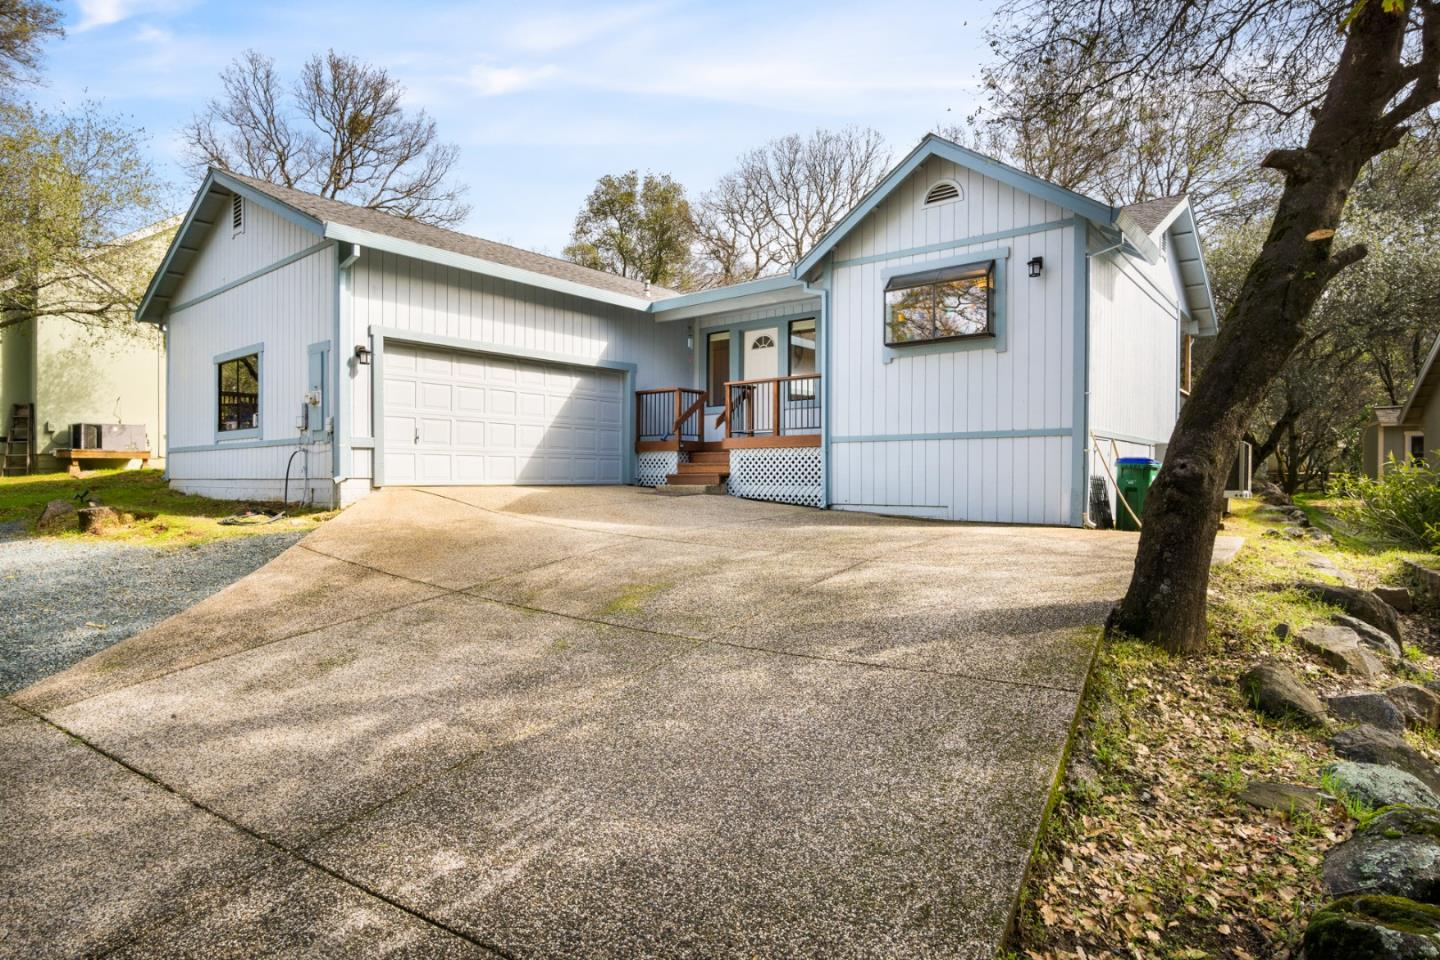 Single Family Home for Sale at 18031 Foxtail Drive 18031 Foxtail Drive Penn Valley, California 95946 United States